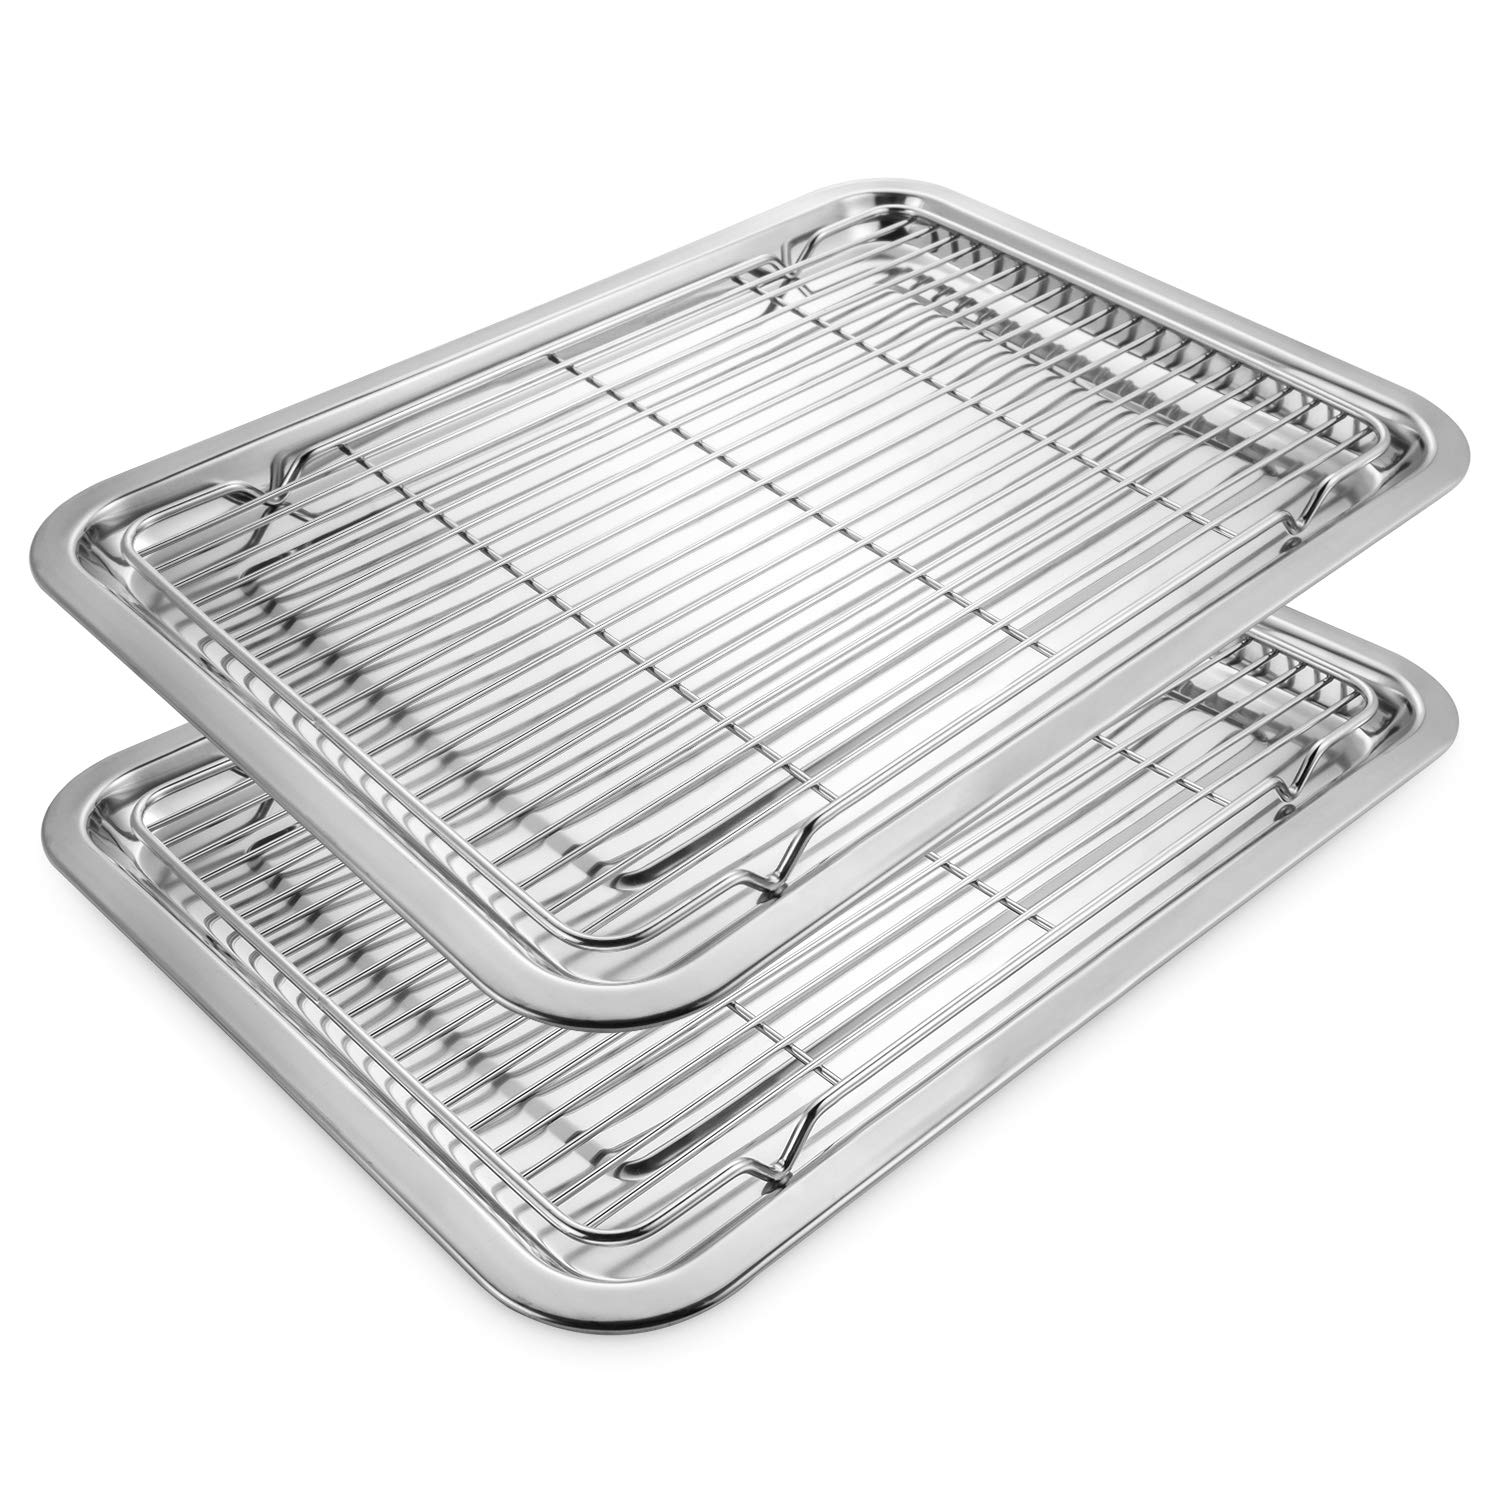 Stainless Steel Baking Set with 2 Baking Sheet and 2 Cooling Racks, No-stick Half Sheet Pan Roast Trays for Cookies, Cakes, Breads